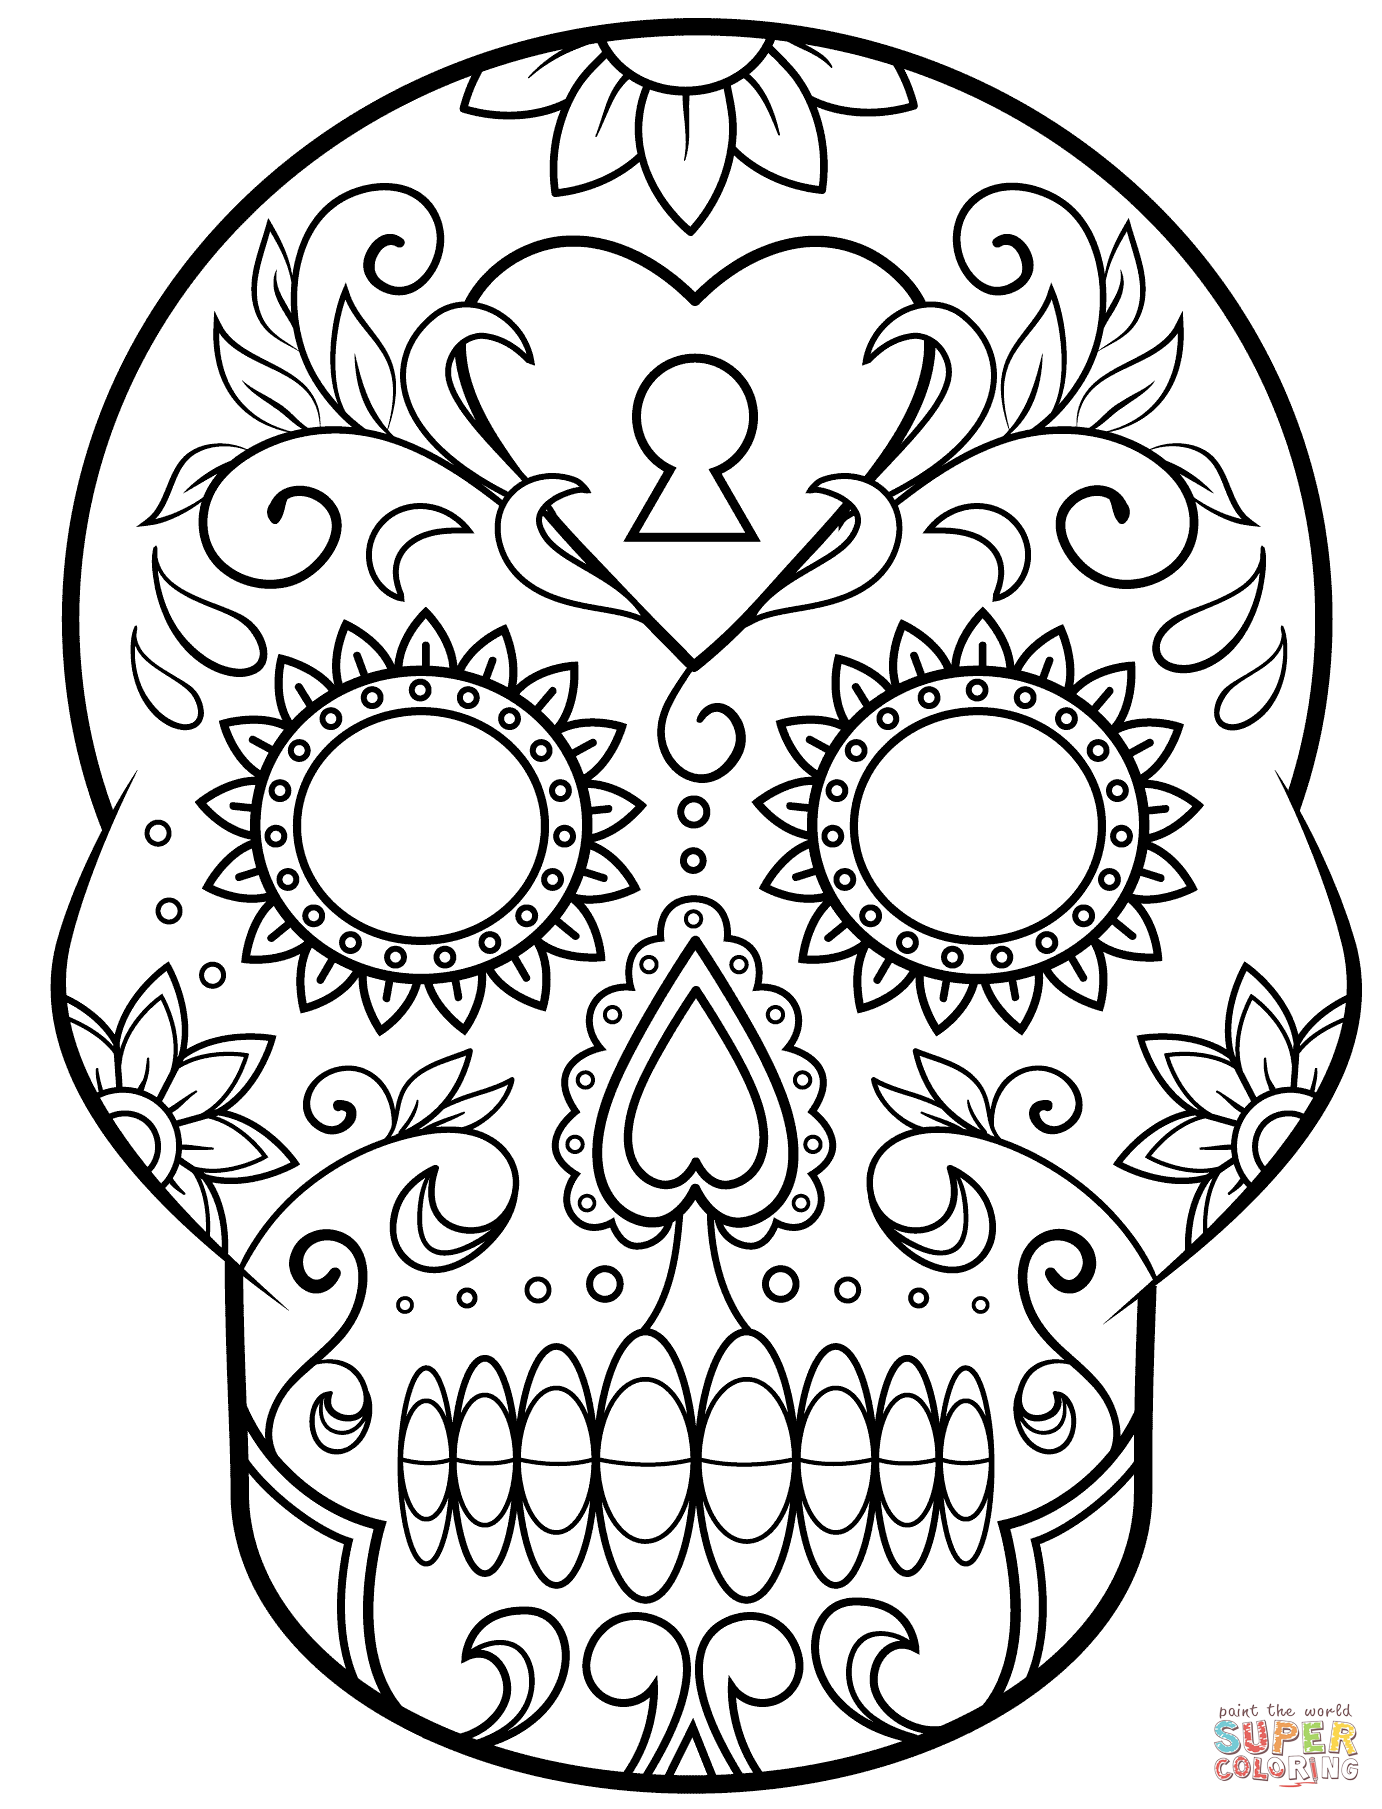 day of the dead skulls coloring pages free printable day of the dead coloring pages best day skulls coloring of pages the dead